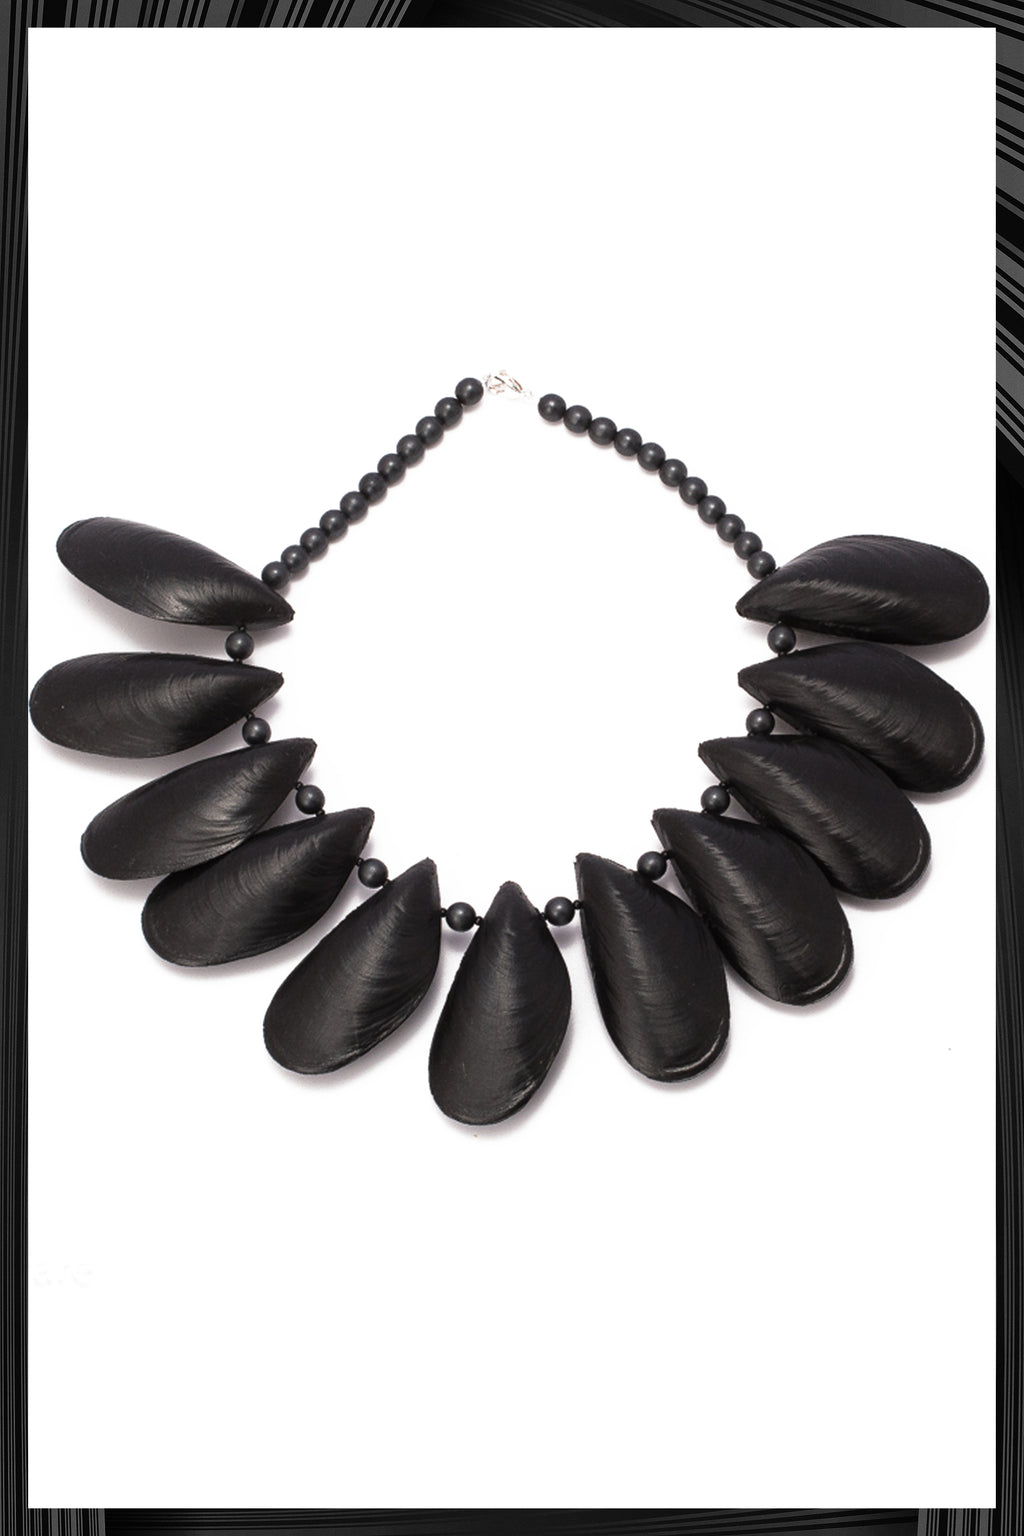 Mussel Necklace | Free Delivery - Quick Shipping